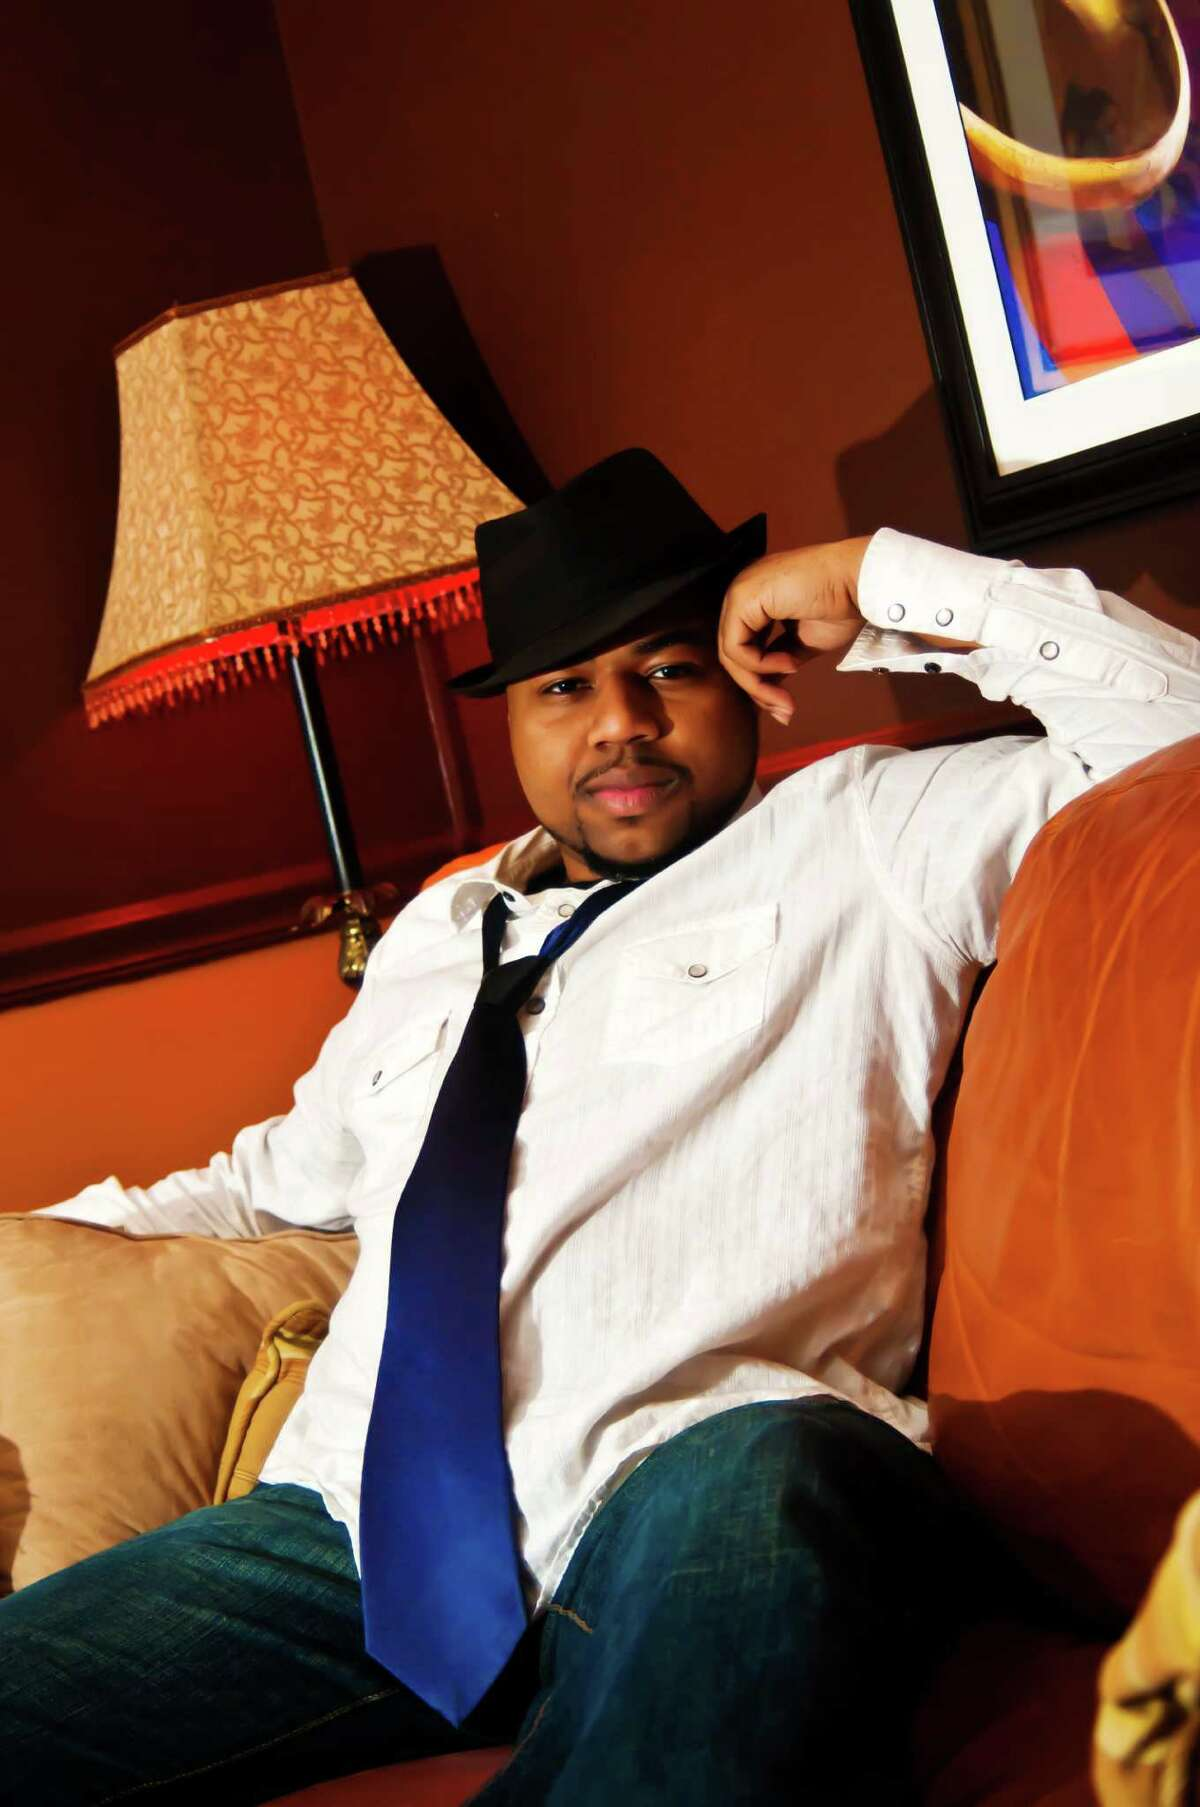 Marquis Johnson, known as Mr. Qwes, will perform at Pizzeria Lauretano in Bethel on Thursday, Oct. 24.